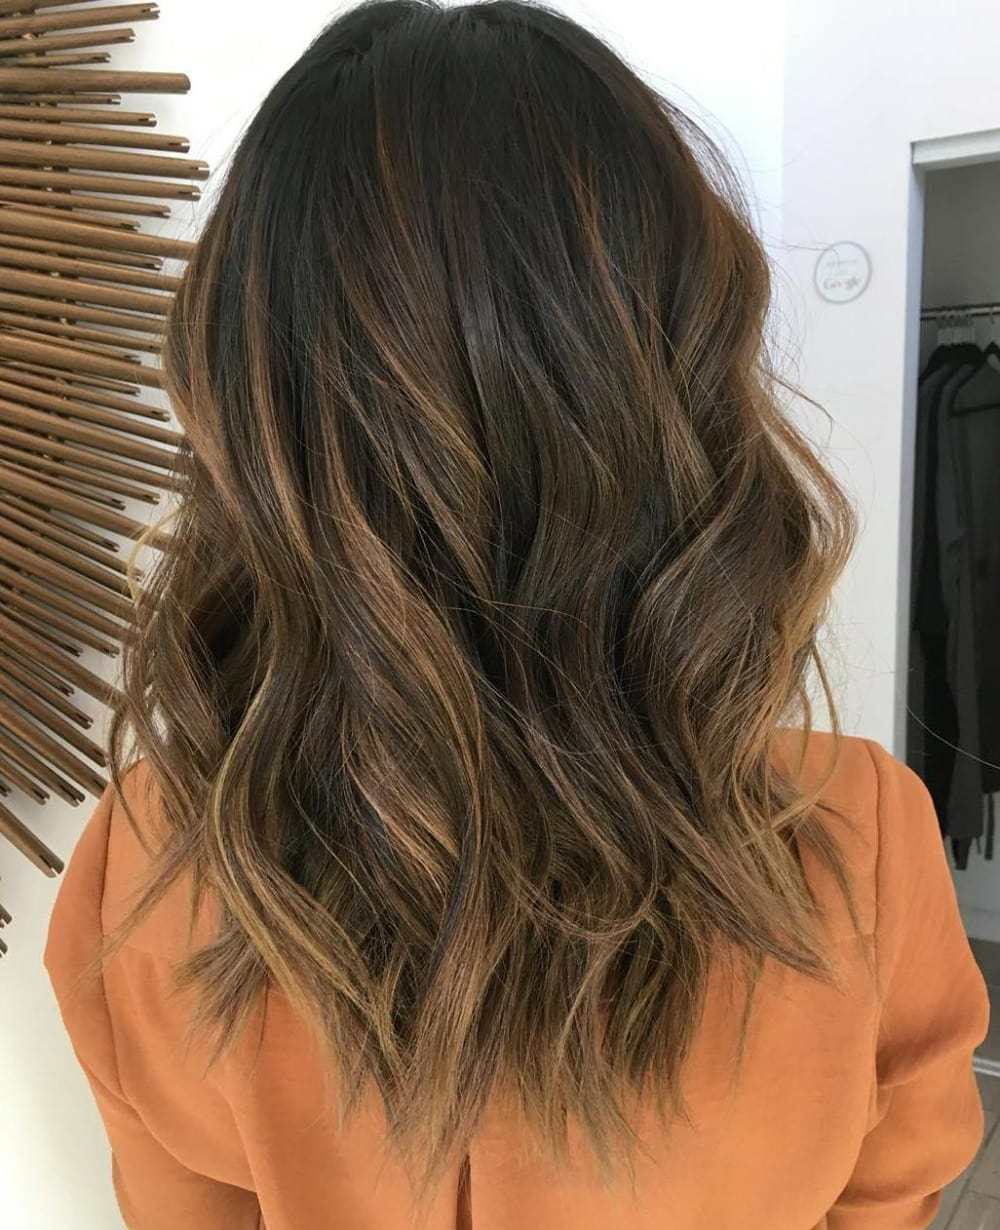 90 balayage hair color ideas with blonde brown and caramel highlights medium dark brown hair with caramel balayage pmusecretfo Choice Image